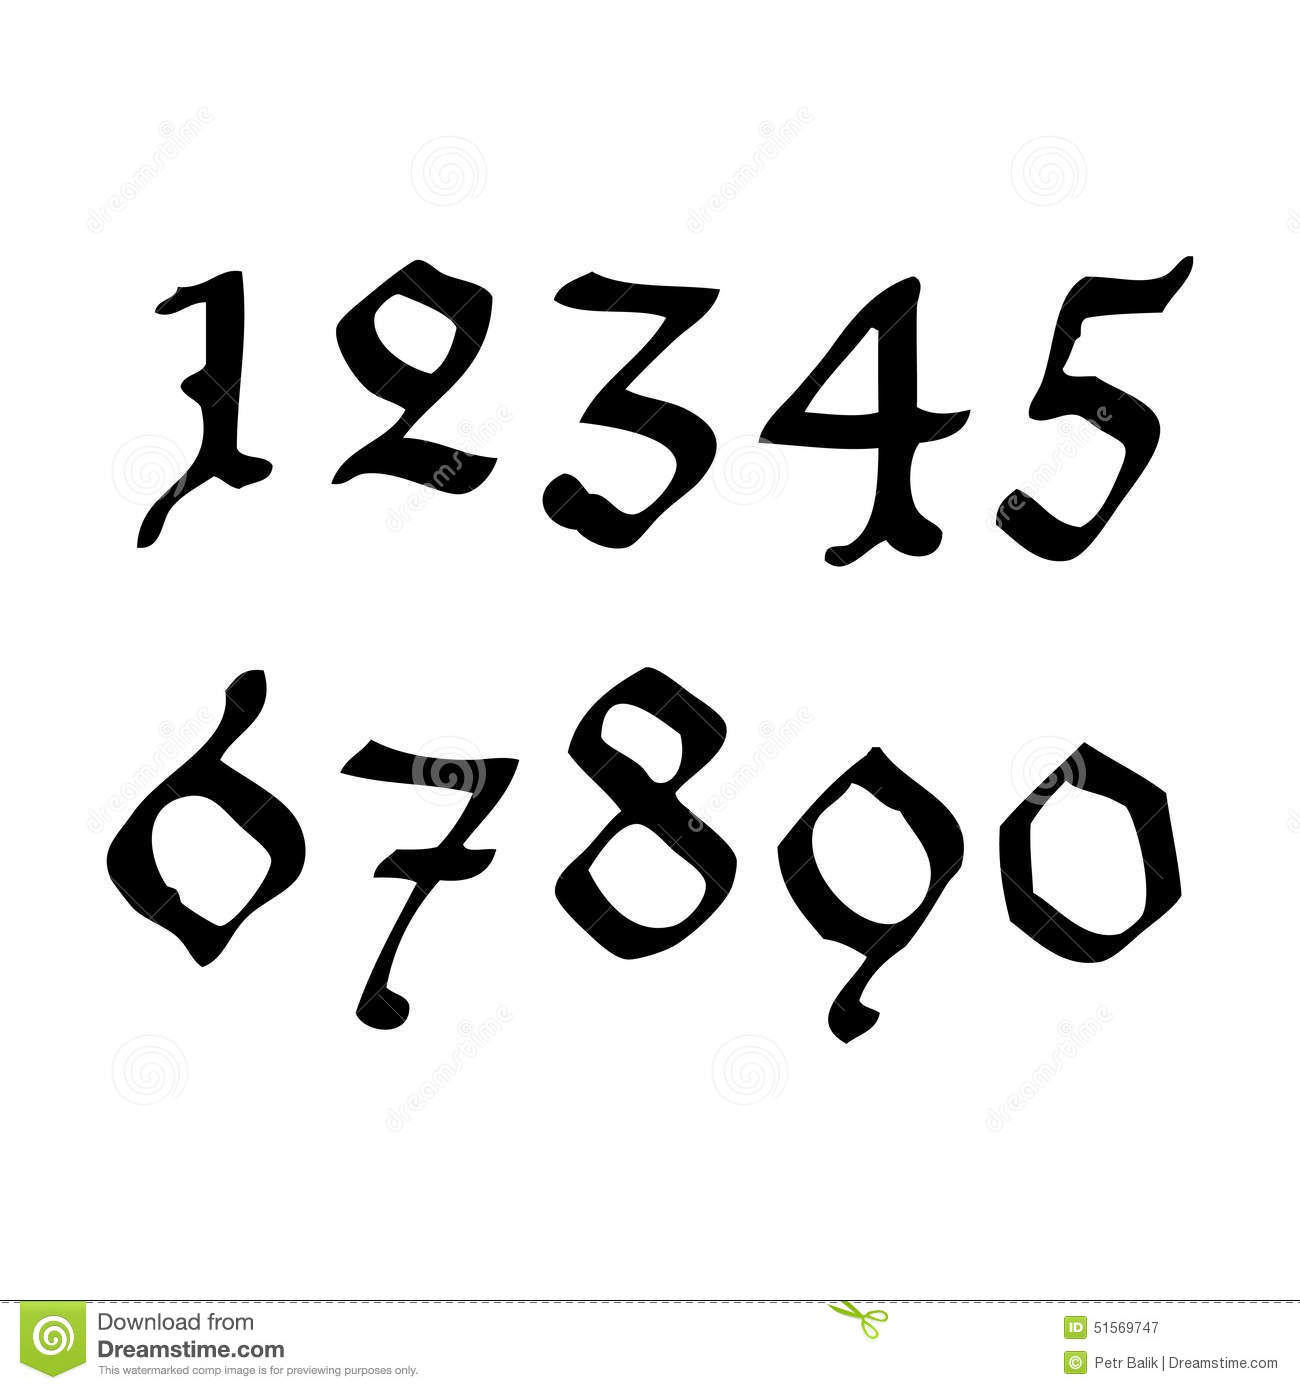 Gothical handwritten numbers